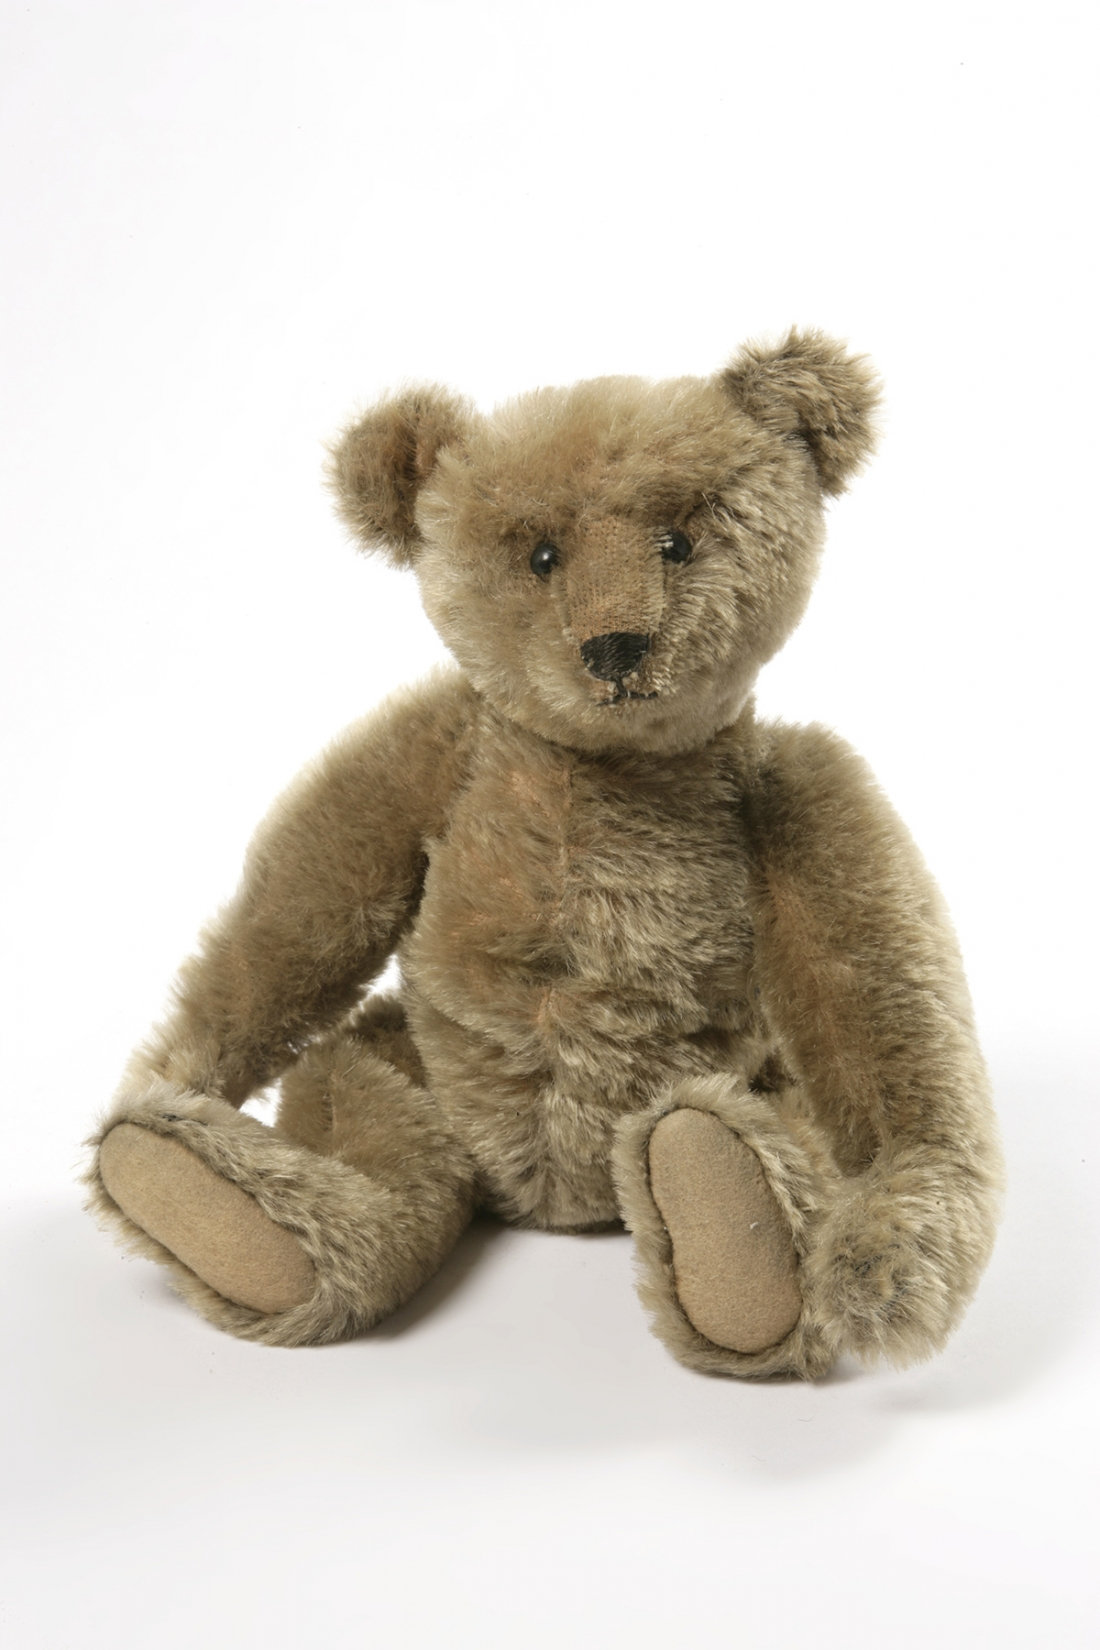 Teddy Bear manufactured by Margarete Steiff ca. 1906-1910. Stuffed and sewn mohair plush. Bequeathed by Miss Z. N. Ziegler. (c) Victoria and Albert Museum, London